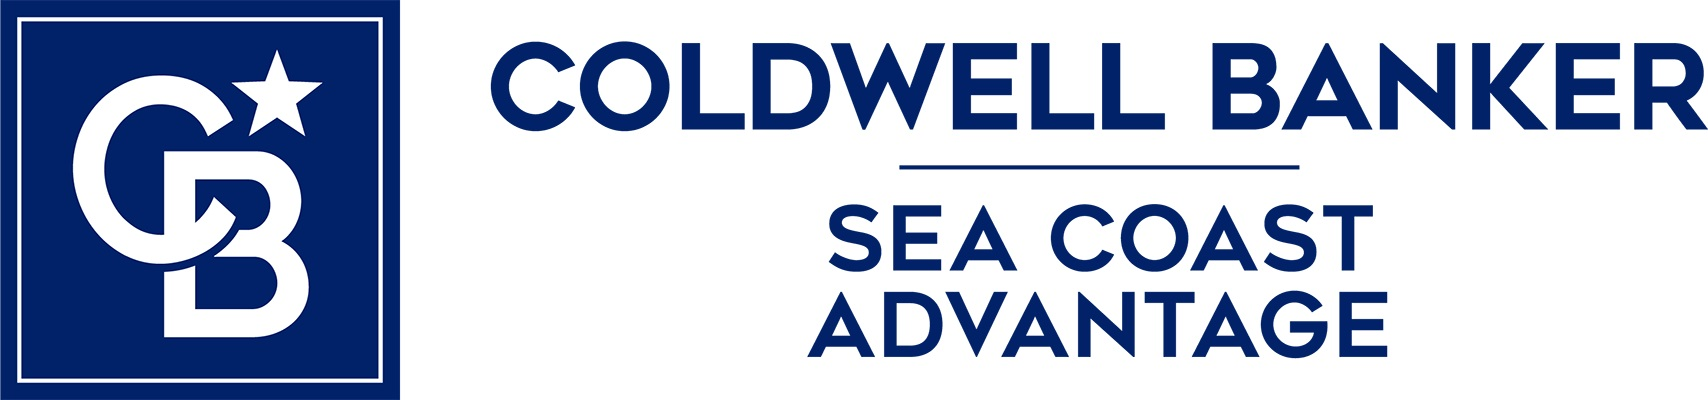 Jeff Bernstein - Coldwell Banker Sea Coast Advantage Realty